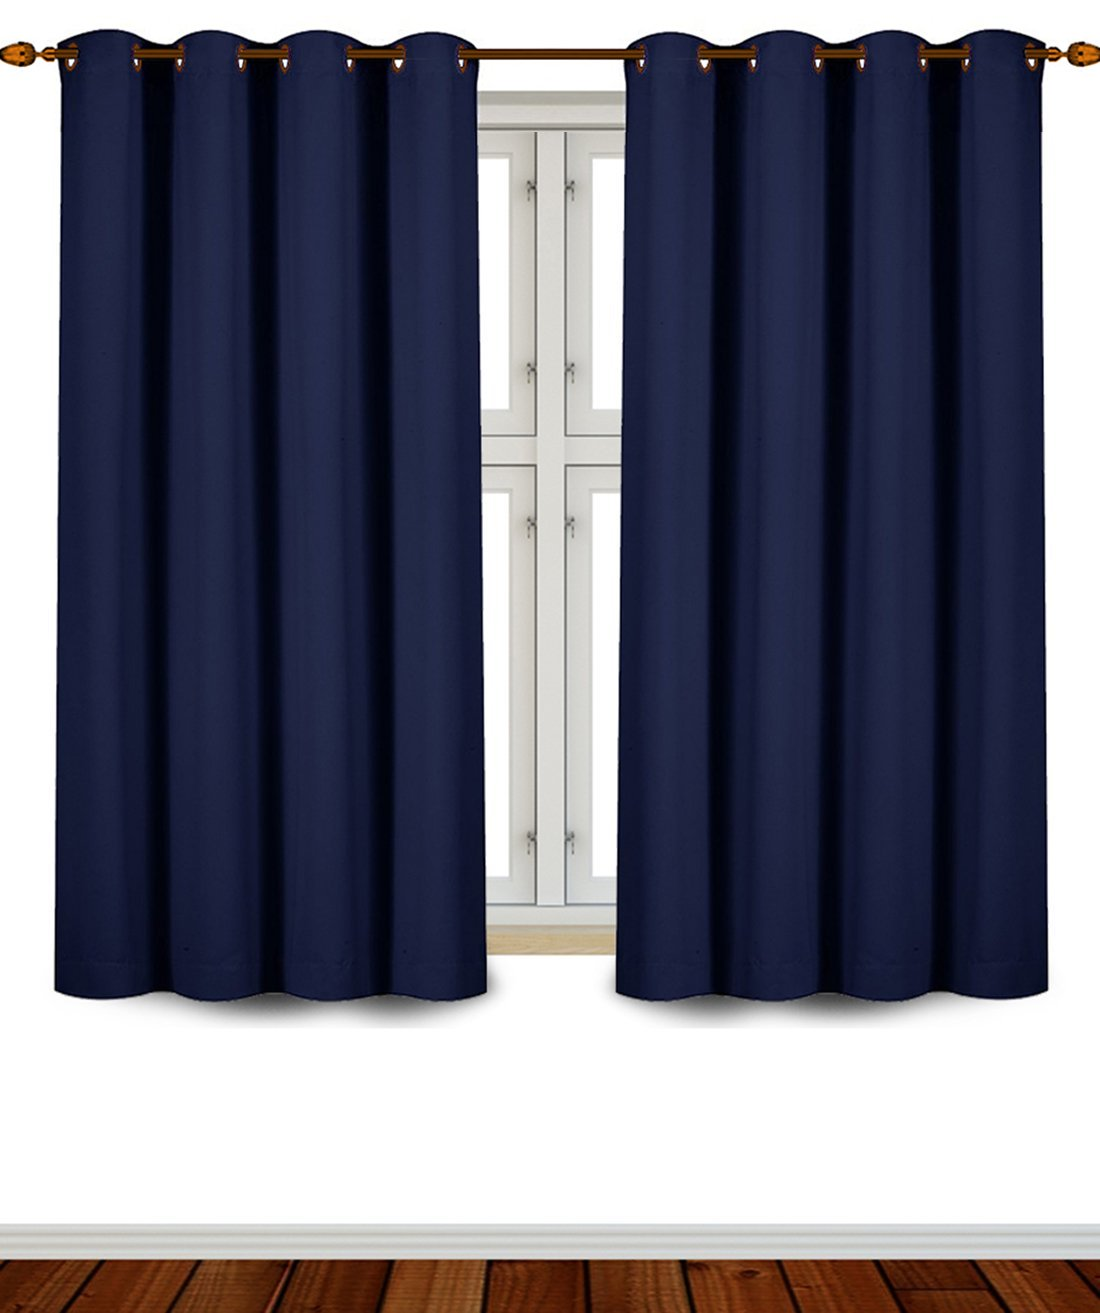 Blowout Curtains Sale Ease Bedding With Style